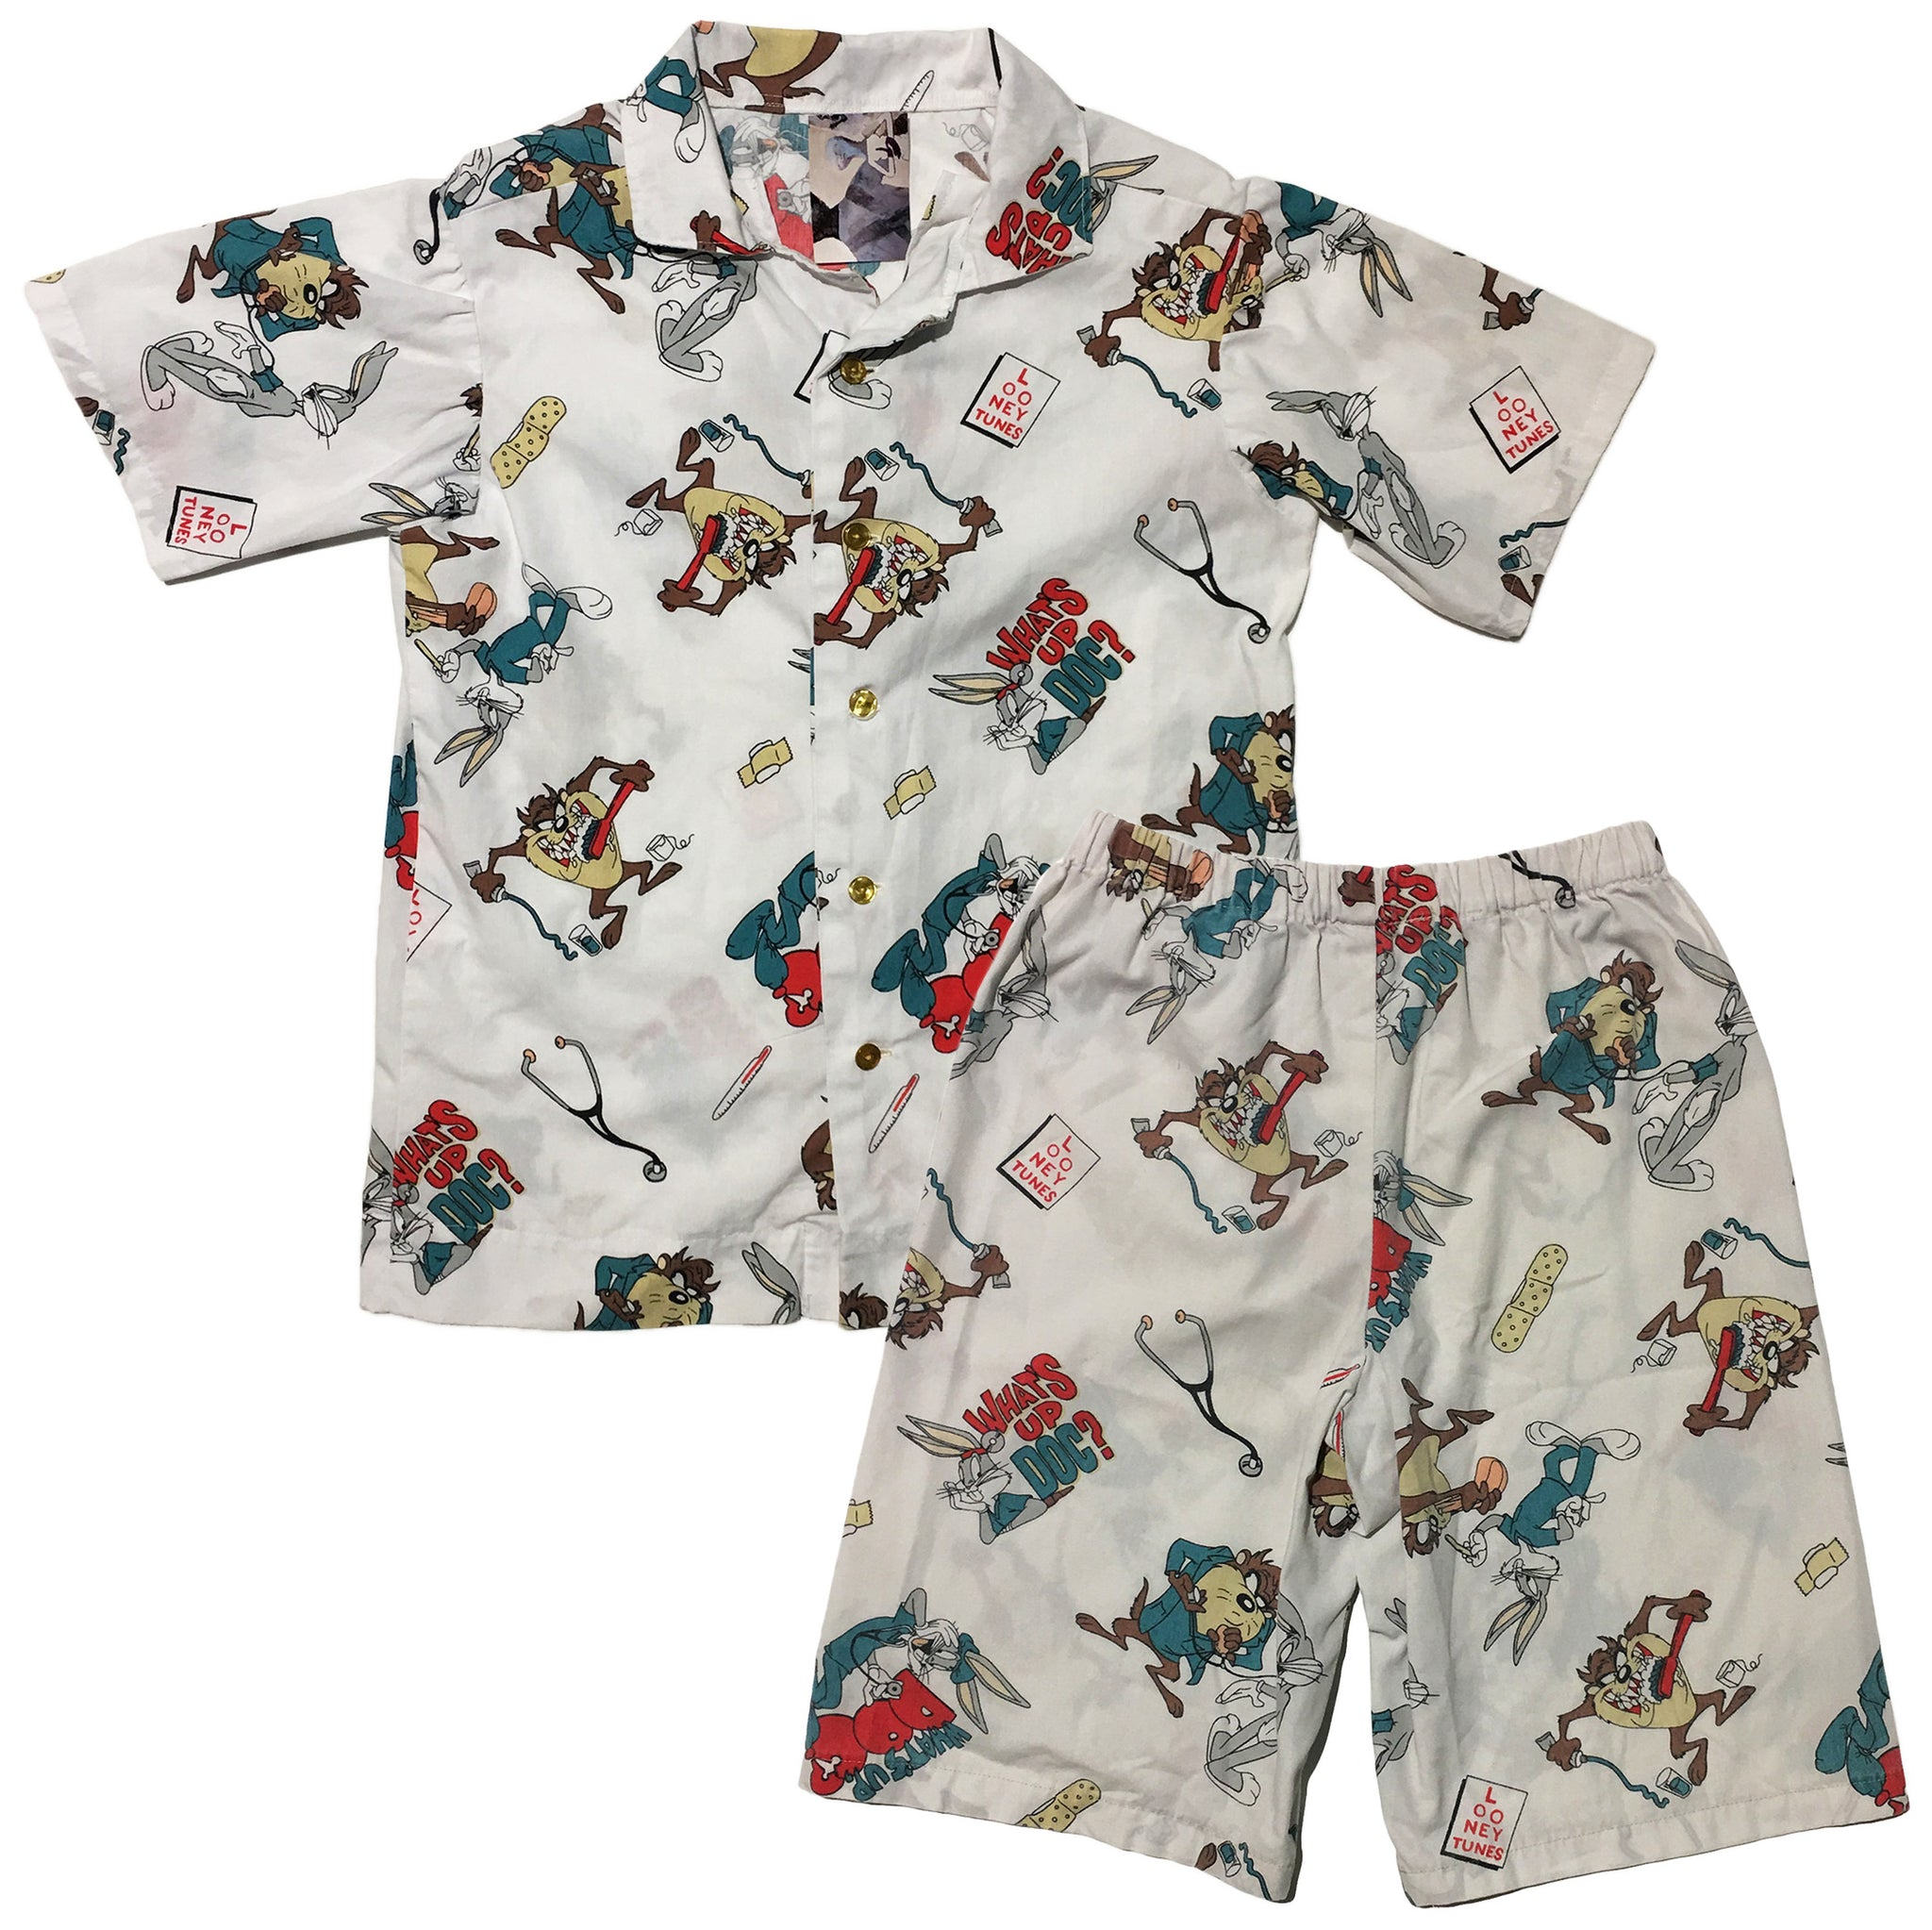 Looney Toons Pyjamas (2 Piece Set)